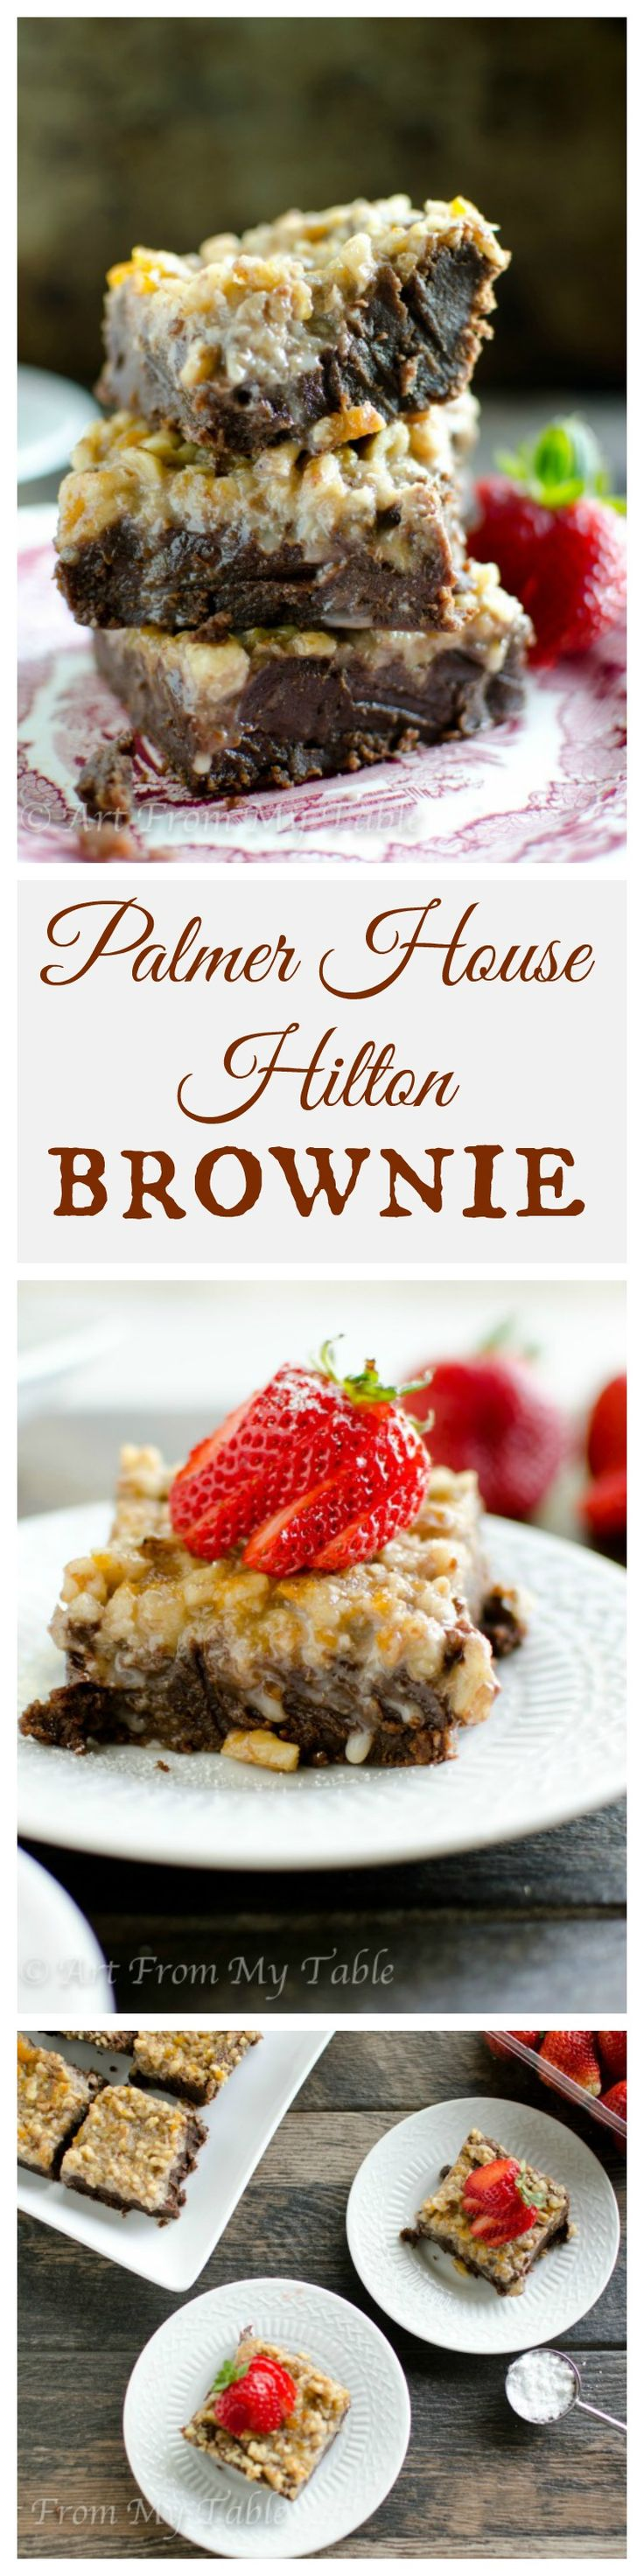 Have a chocolate craving? Try the original brownie recipe! Rich, velvety smooth and decadent.  The Palmer House Hilton Brownie doesn't disappoint!